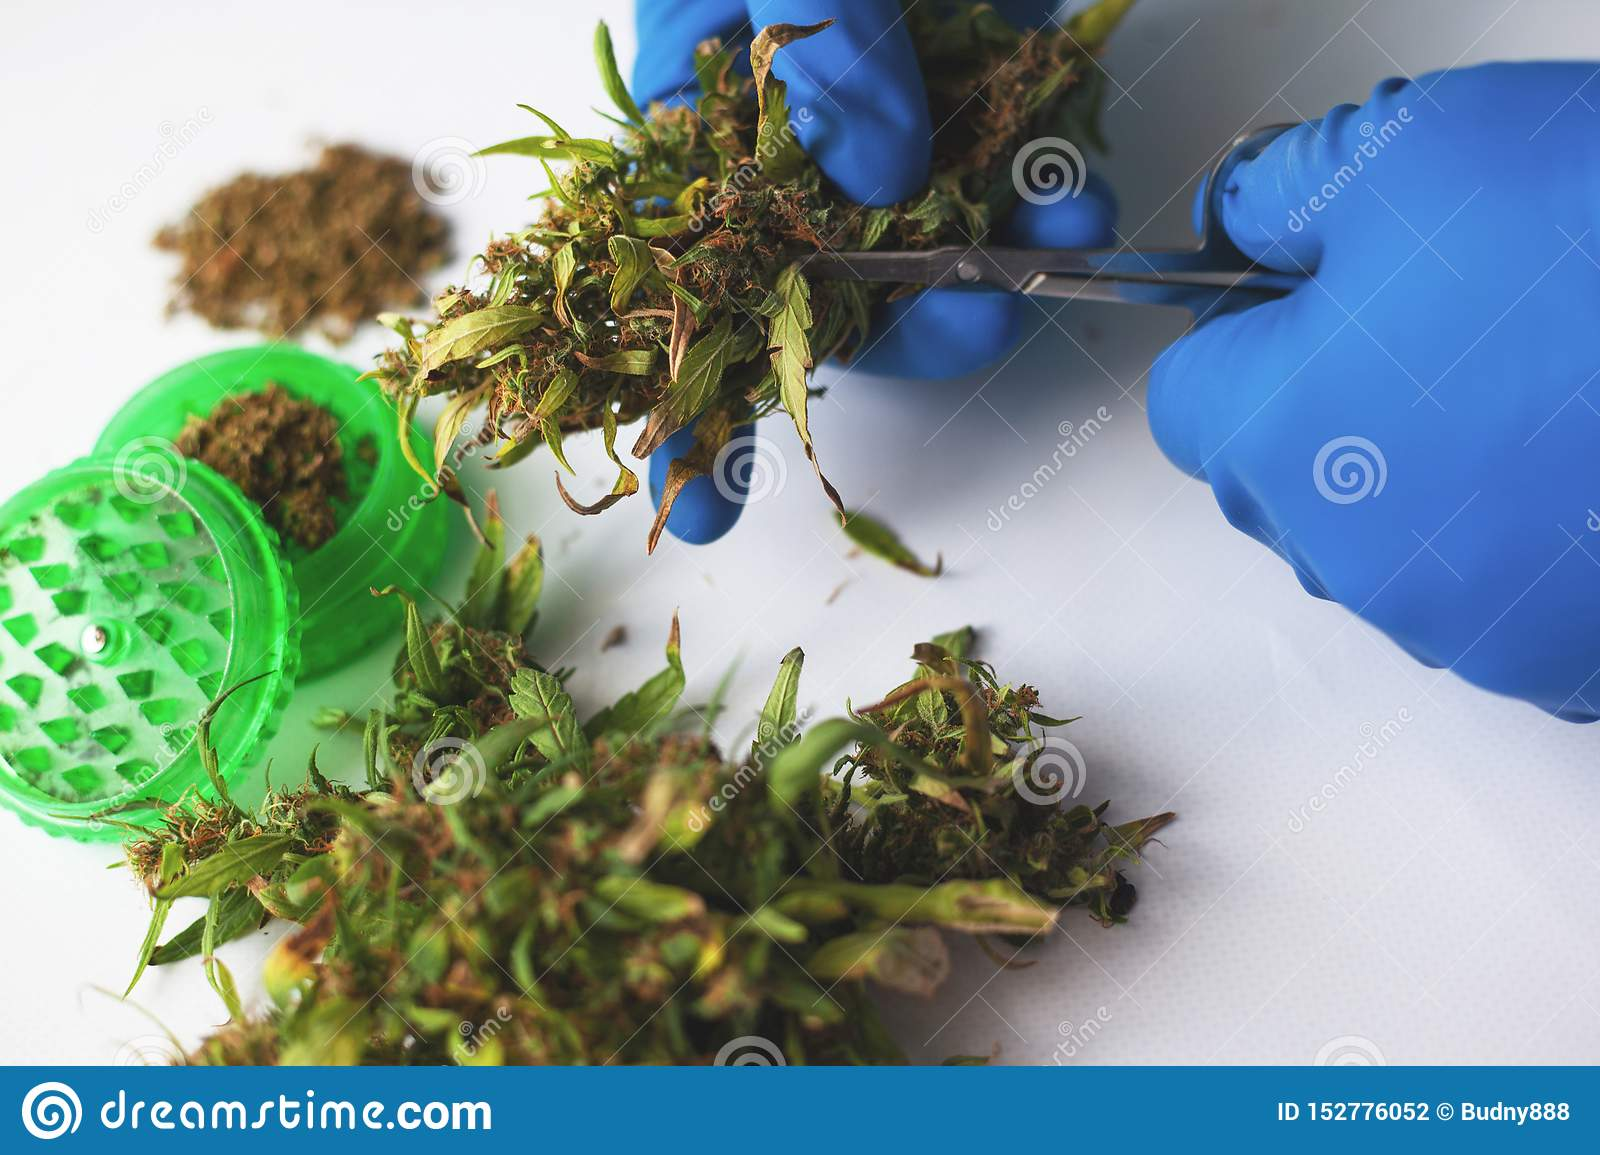 The doctor tells the patient how to properly cut cannabis leaves to consume the most valuable product of marijuana